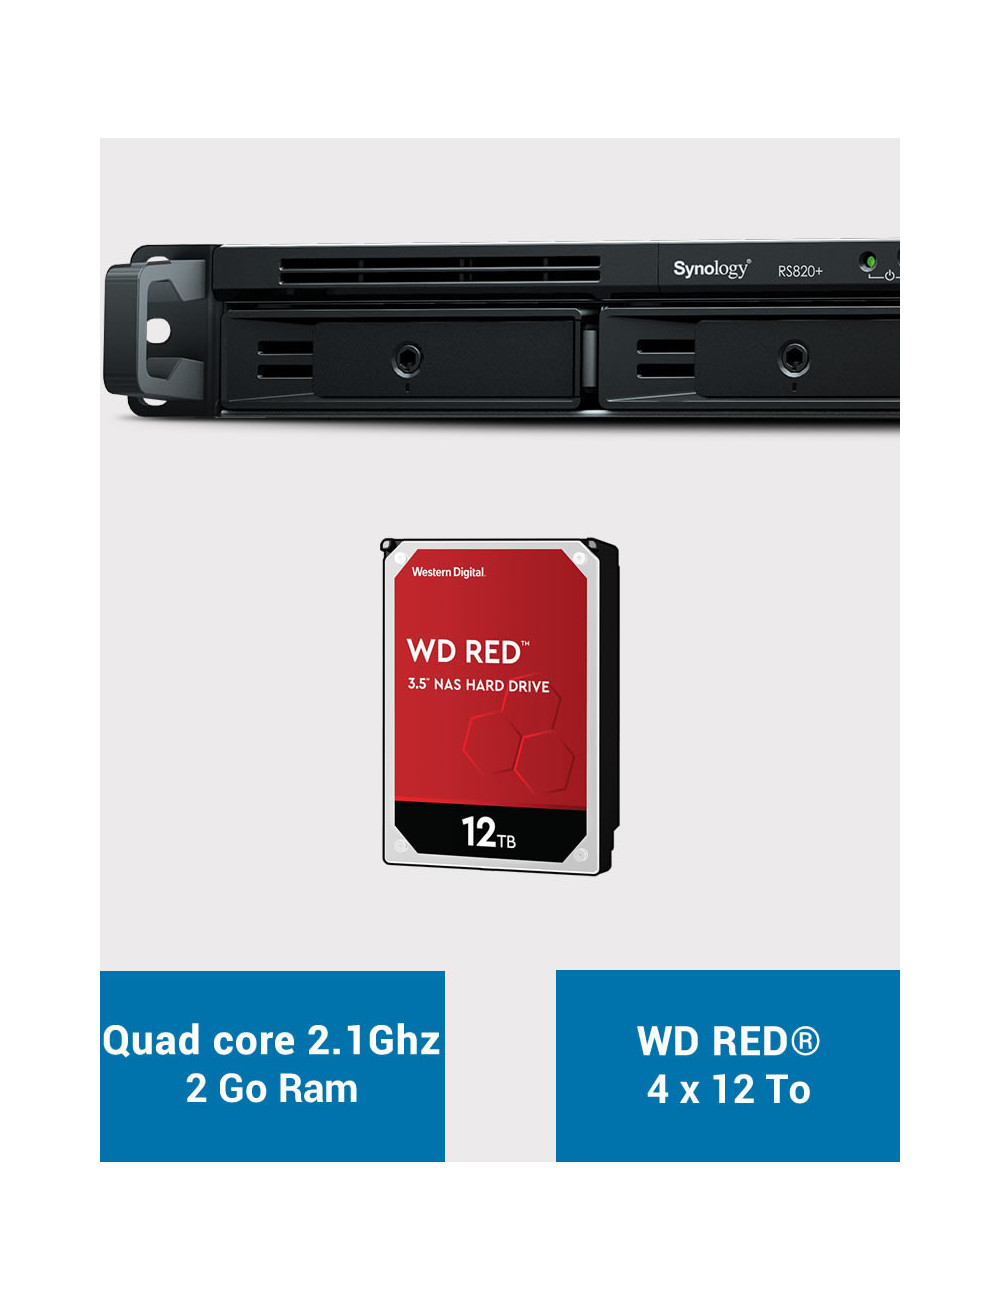 Synology RS820+ Serveur NAS WD RED 48To (4x12To)